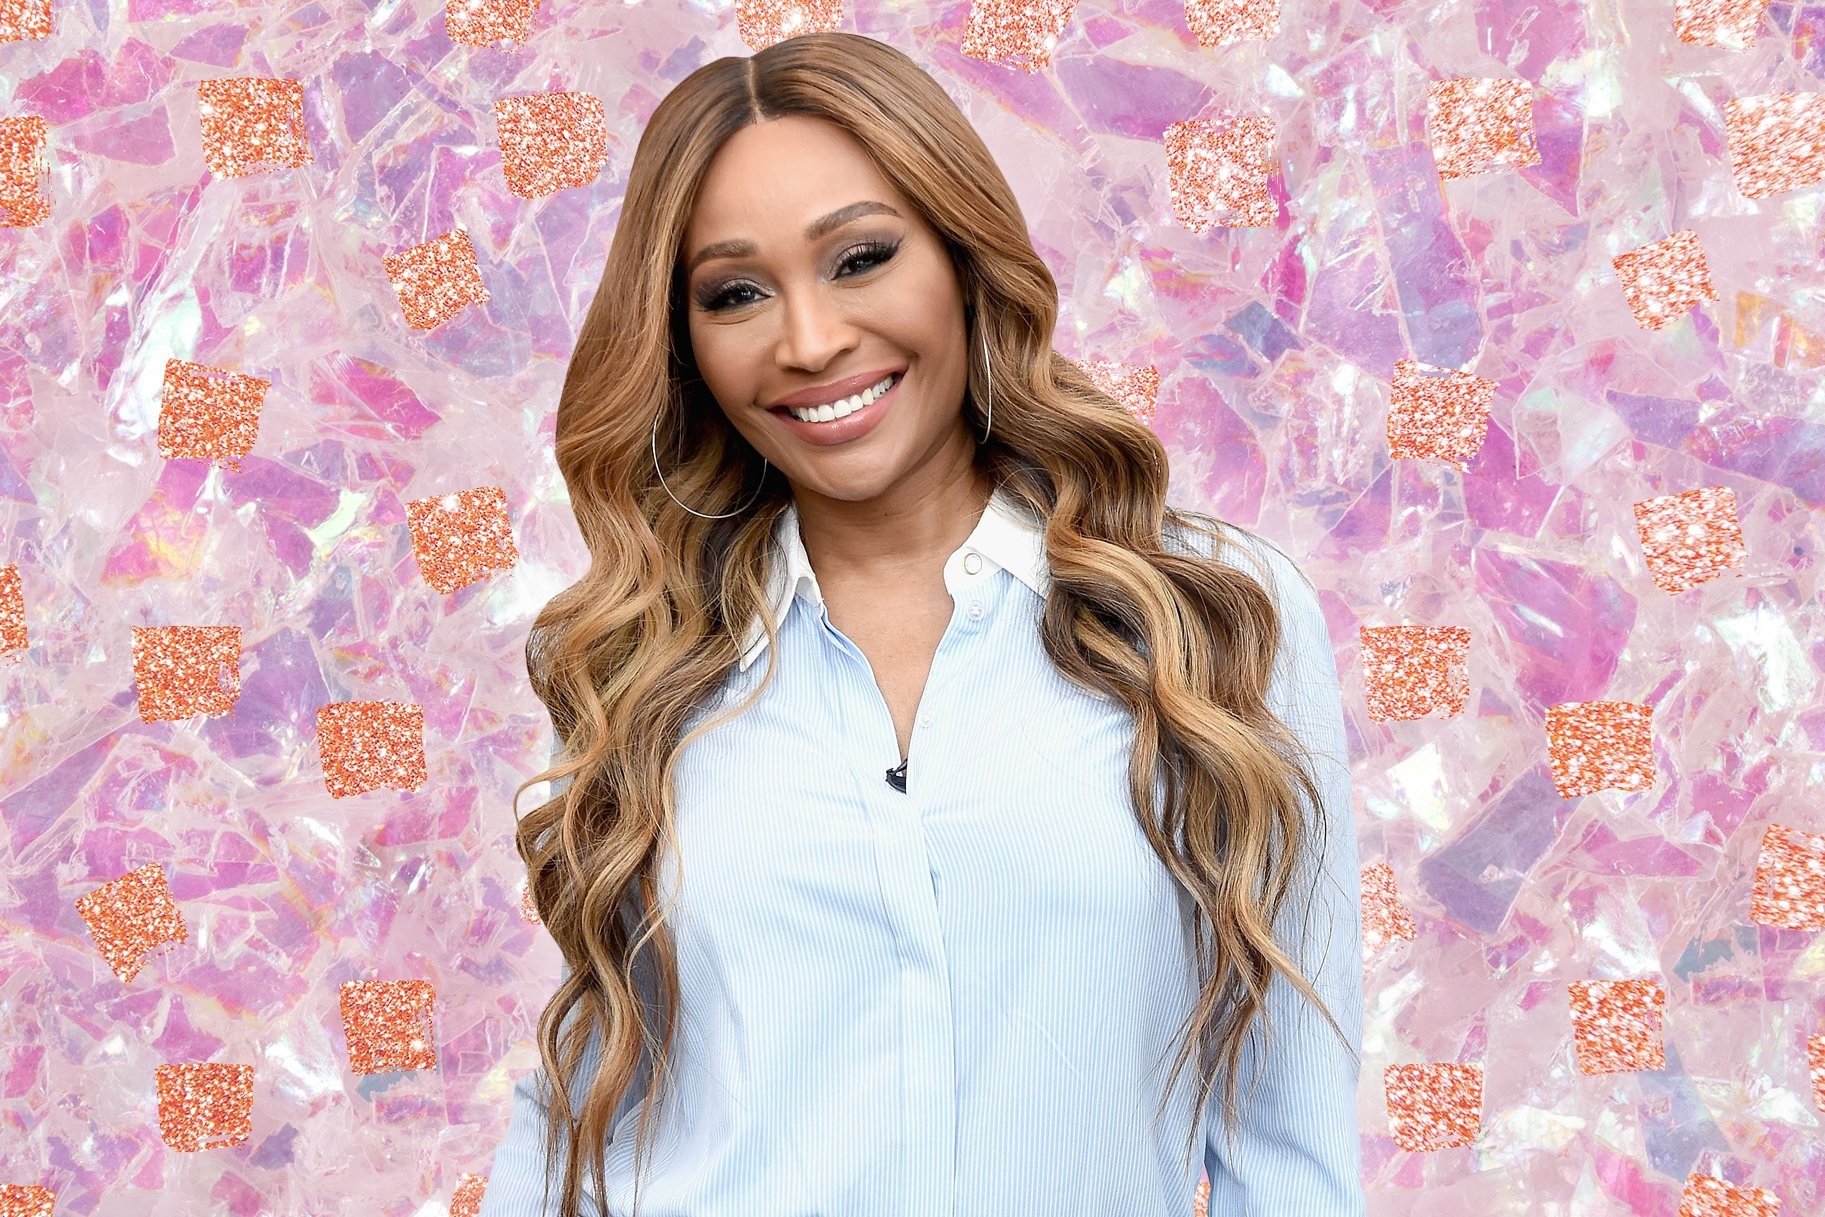 Cynthia Bailey Looks Gorgeous In An All-Black Outfit, Despite Claims From Haters Saying She Gained Weight – See Her Pics